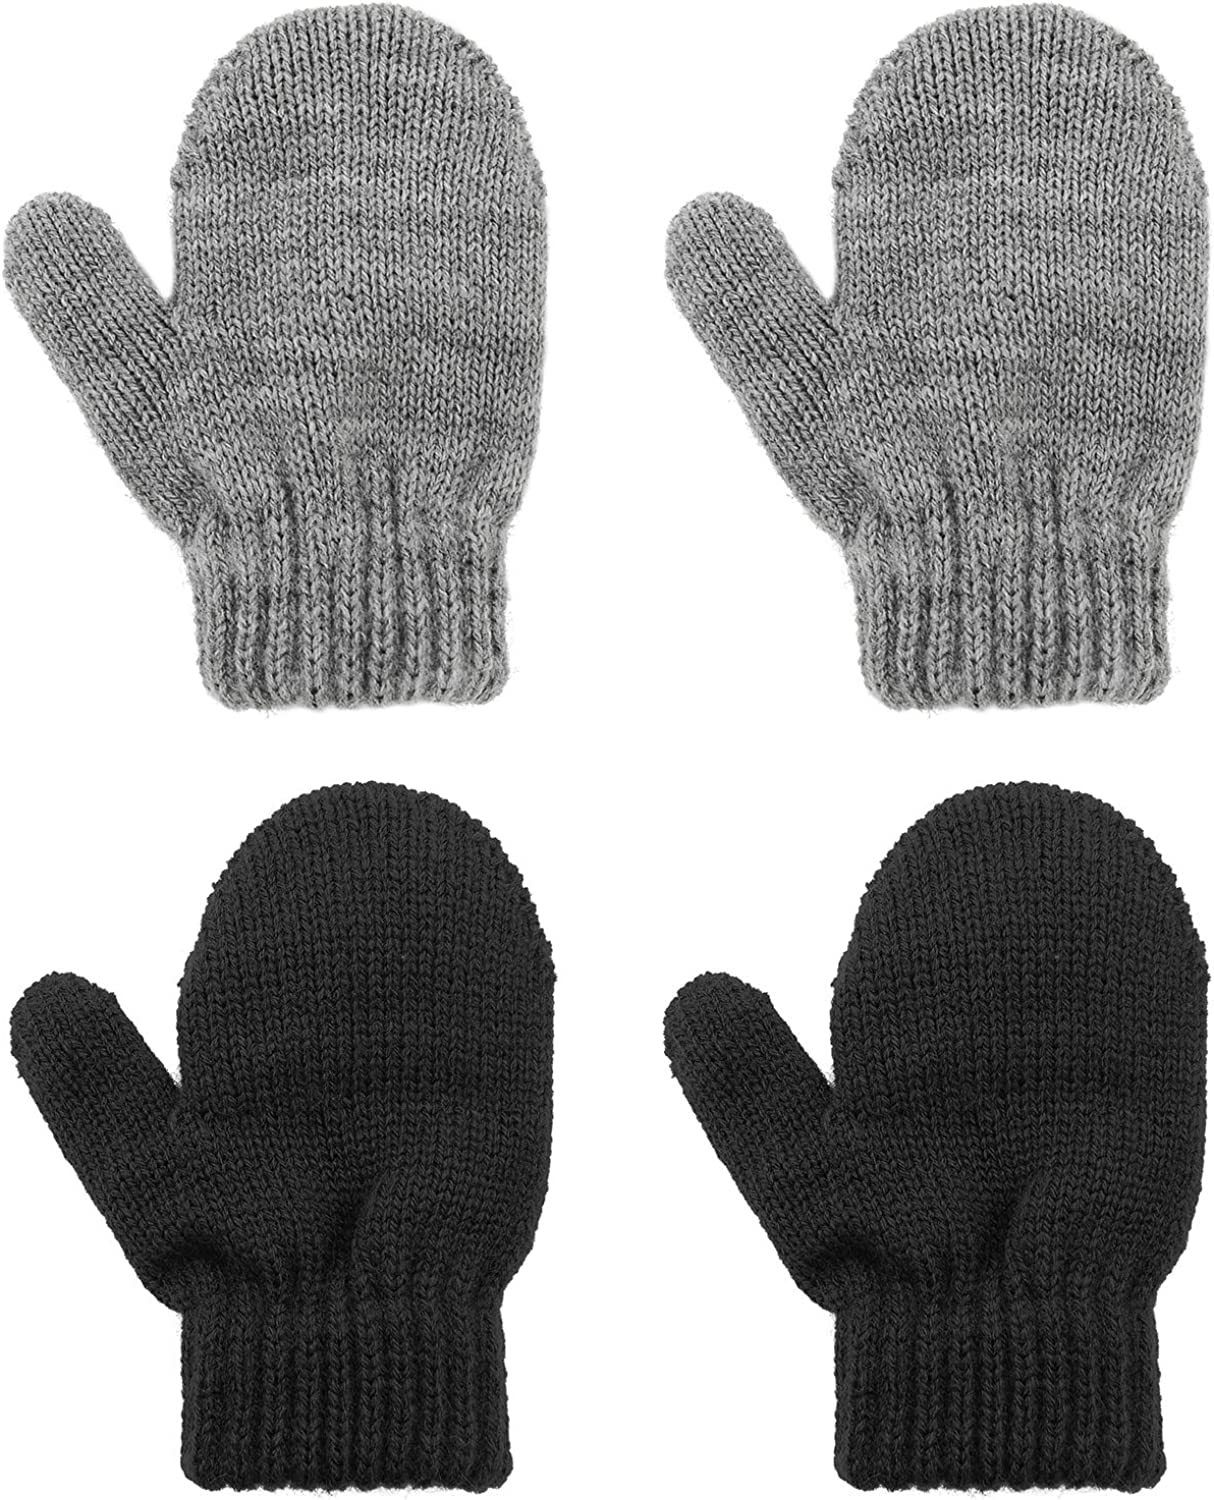 Kids Toddler Mittens Soft Knitted Gloves Winter Warm Stretch Mitten for Baby Boys and Girls Black&Gray